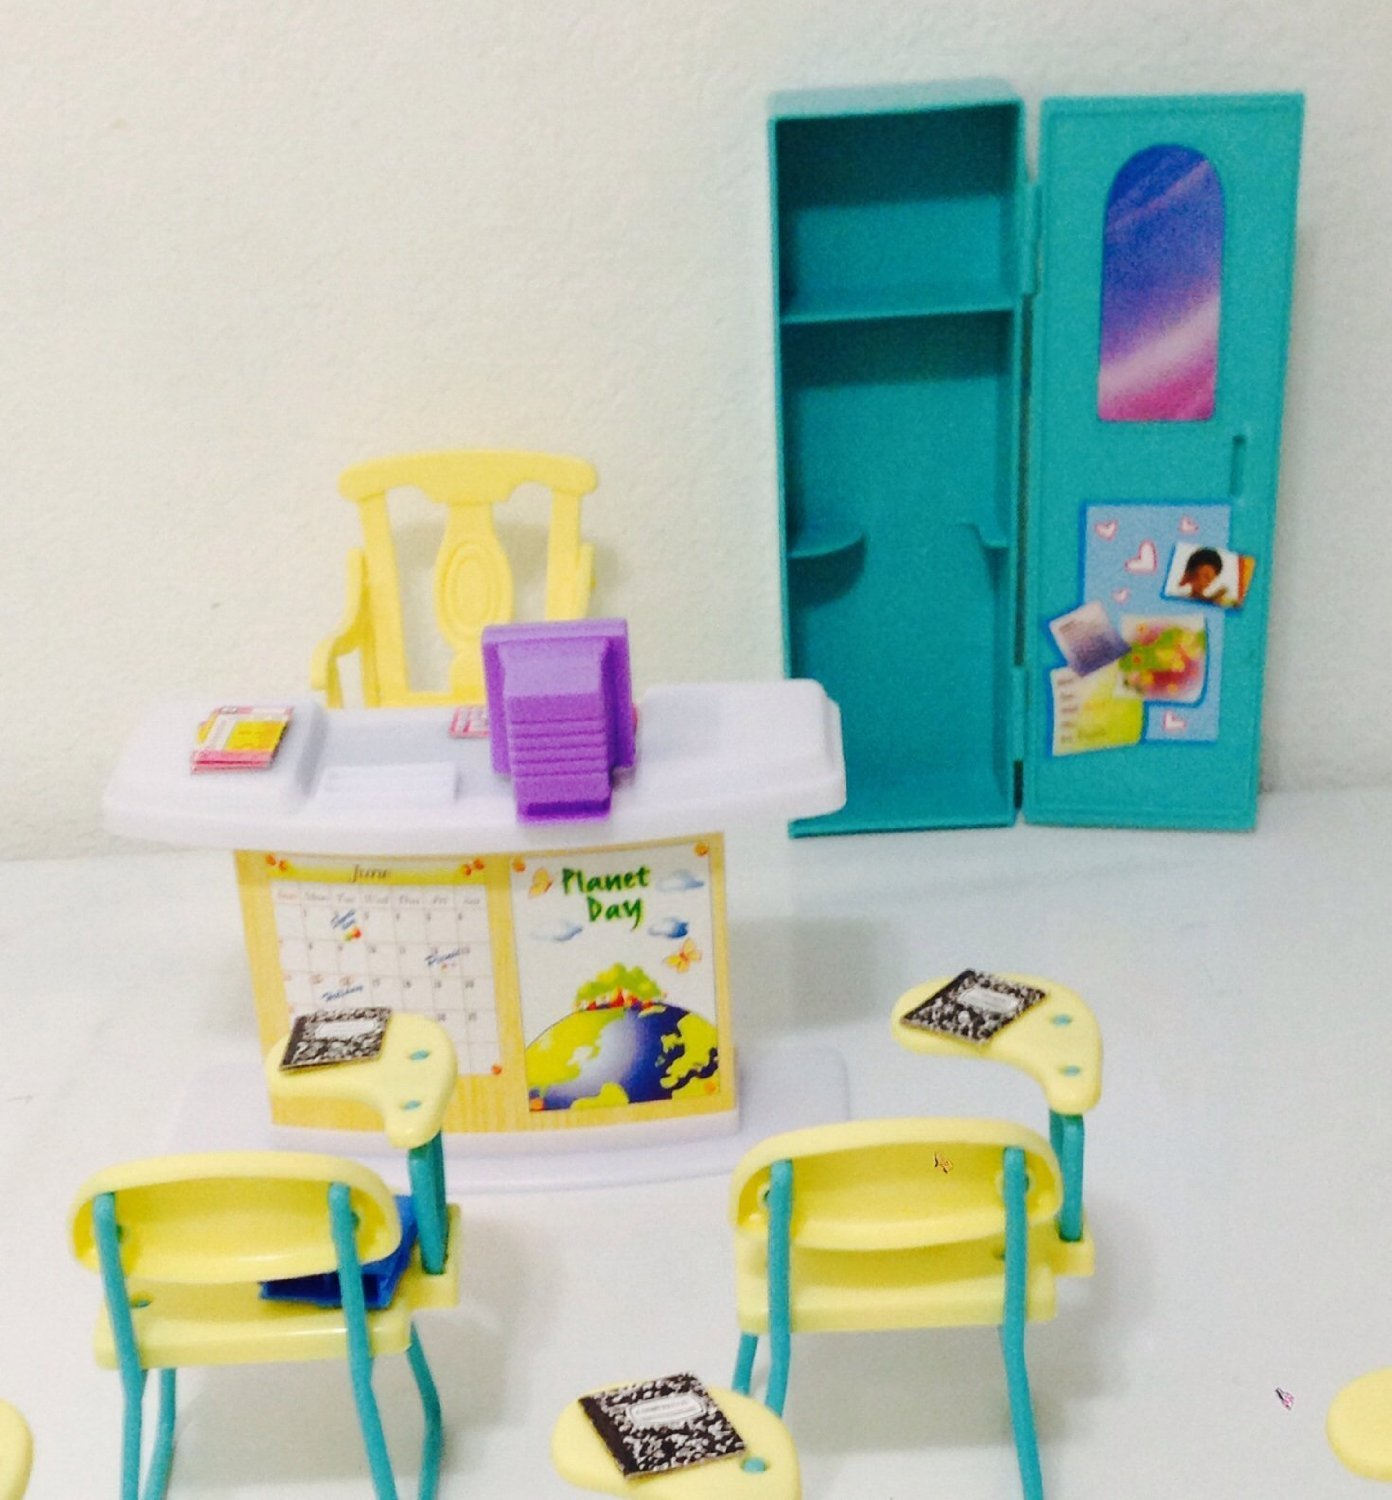 amazoncom barbie size dollhouse furniture classroom play set toys games barbie doll house furniture sets